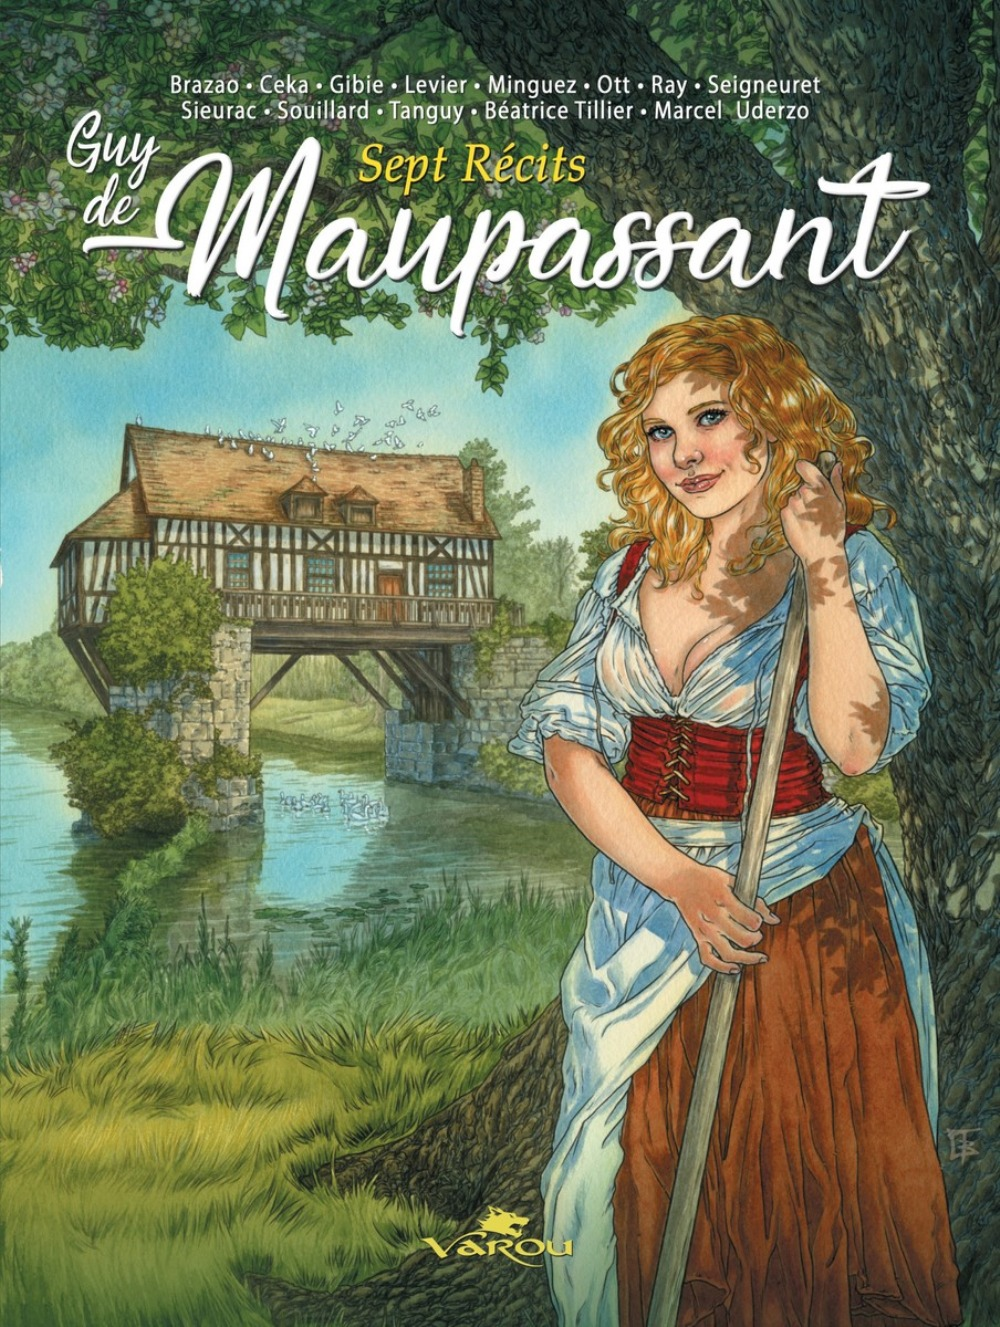 GUY DE MAUPASSANT SEPT RECITS